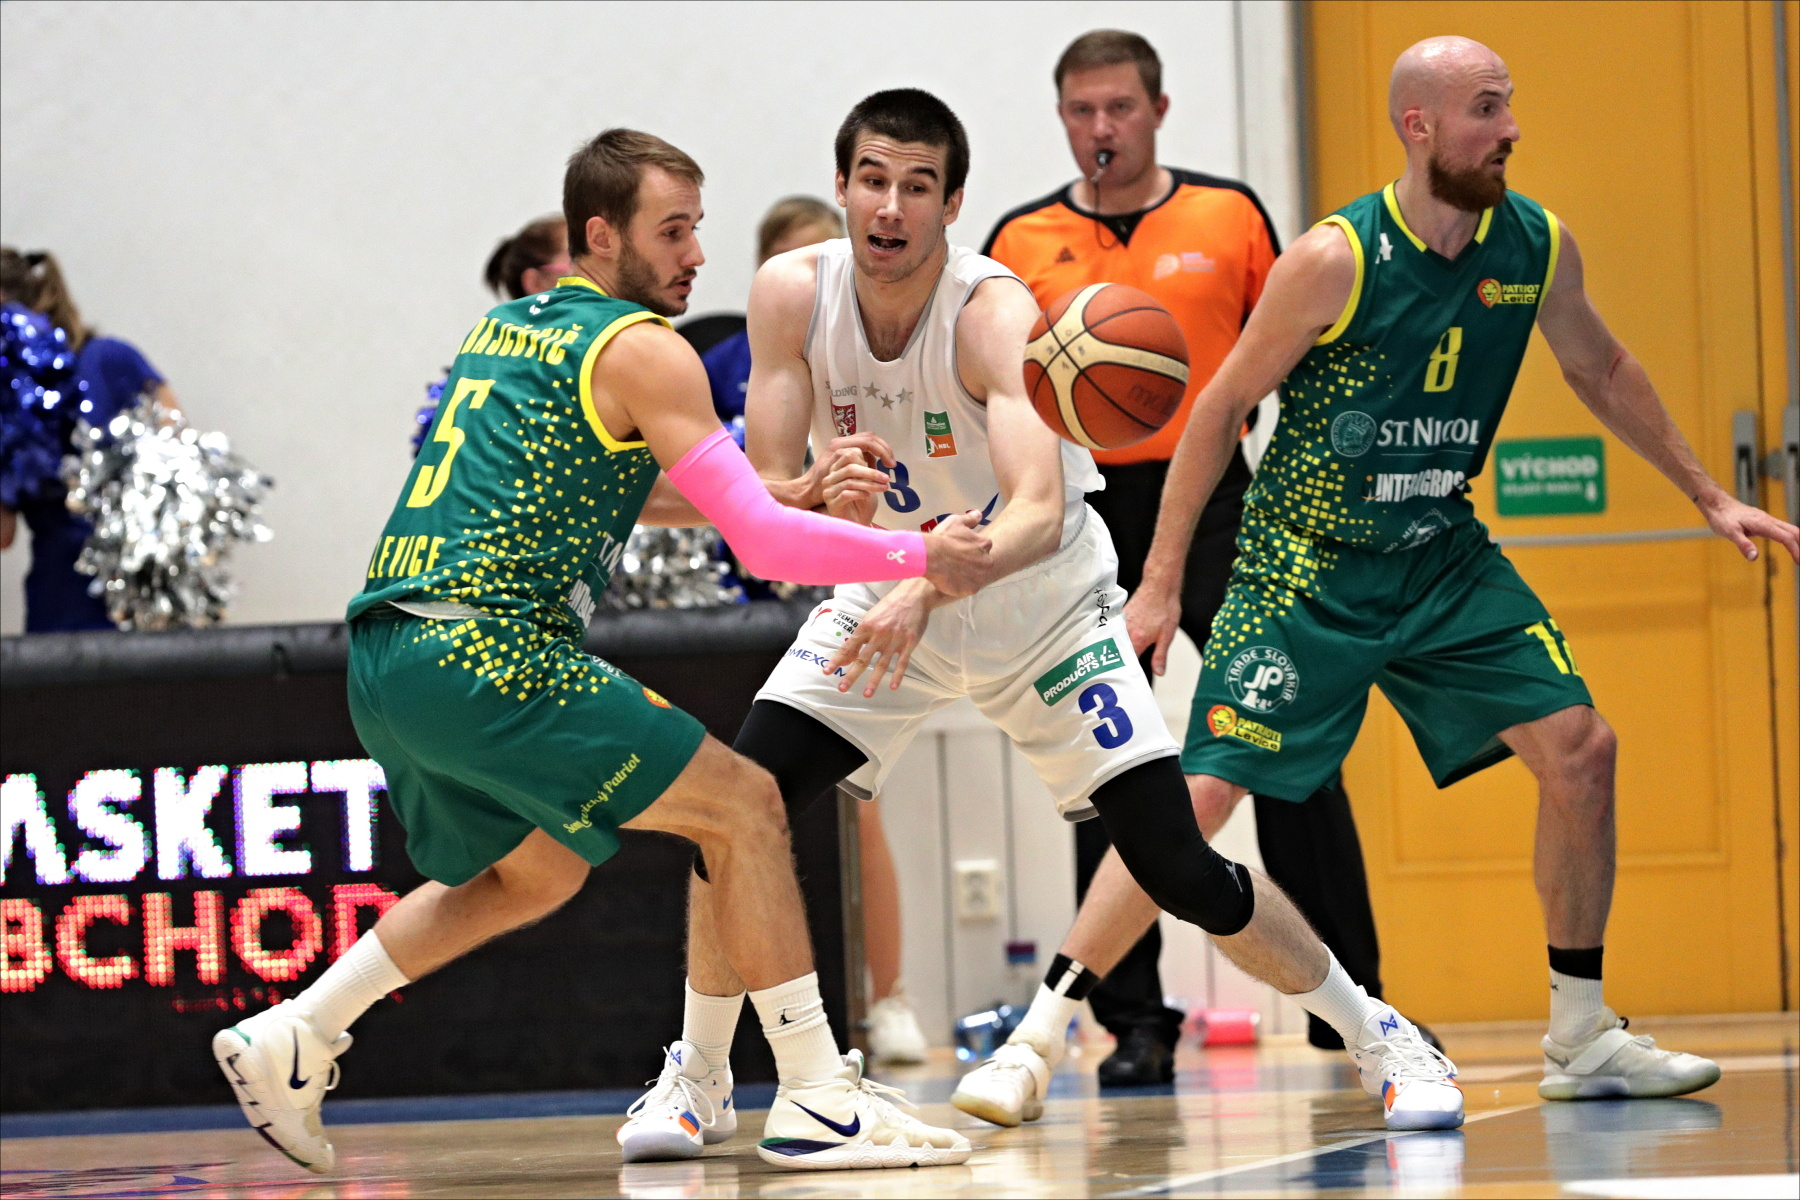 Decin defends homecourt against finalist